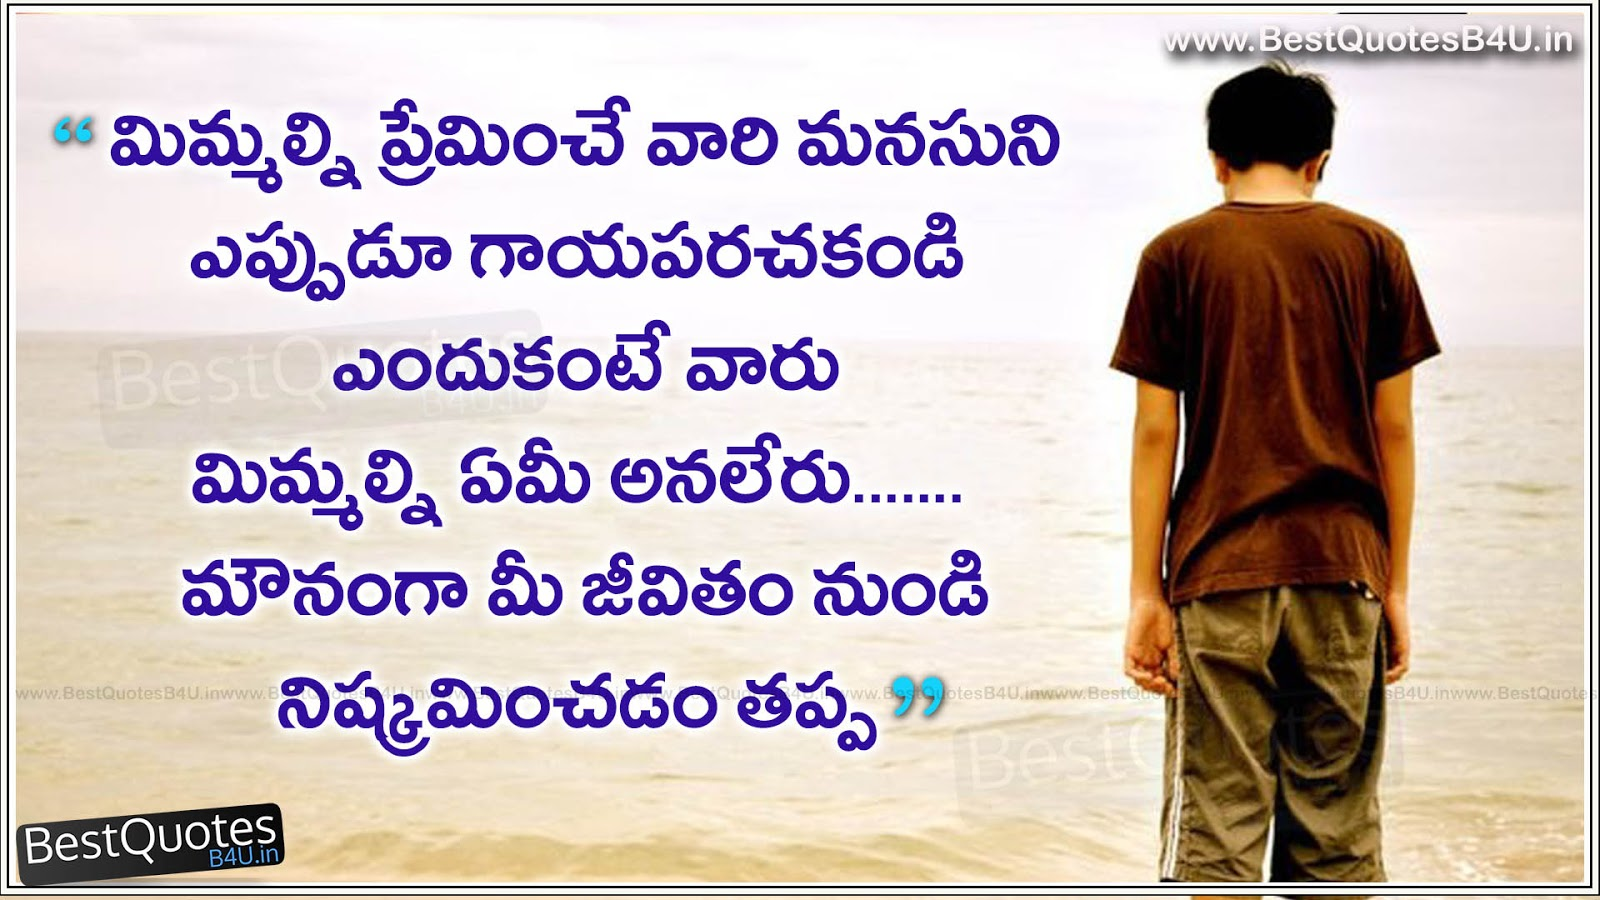 Sad Quotes About Love In Telugu : quotes in telugu love quotes in telugu beautiful telugu status love ...